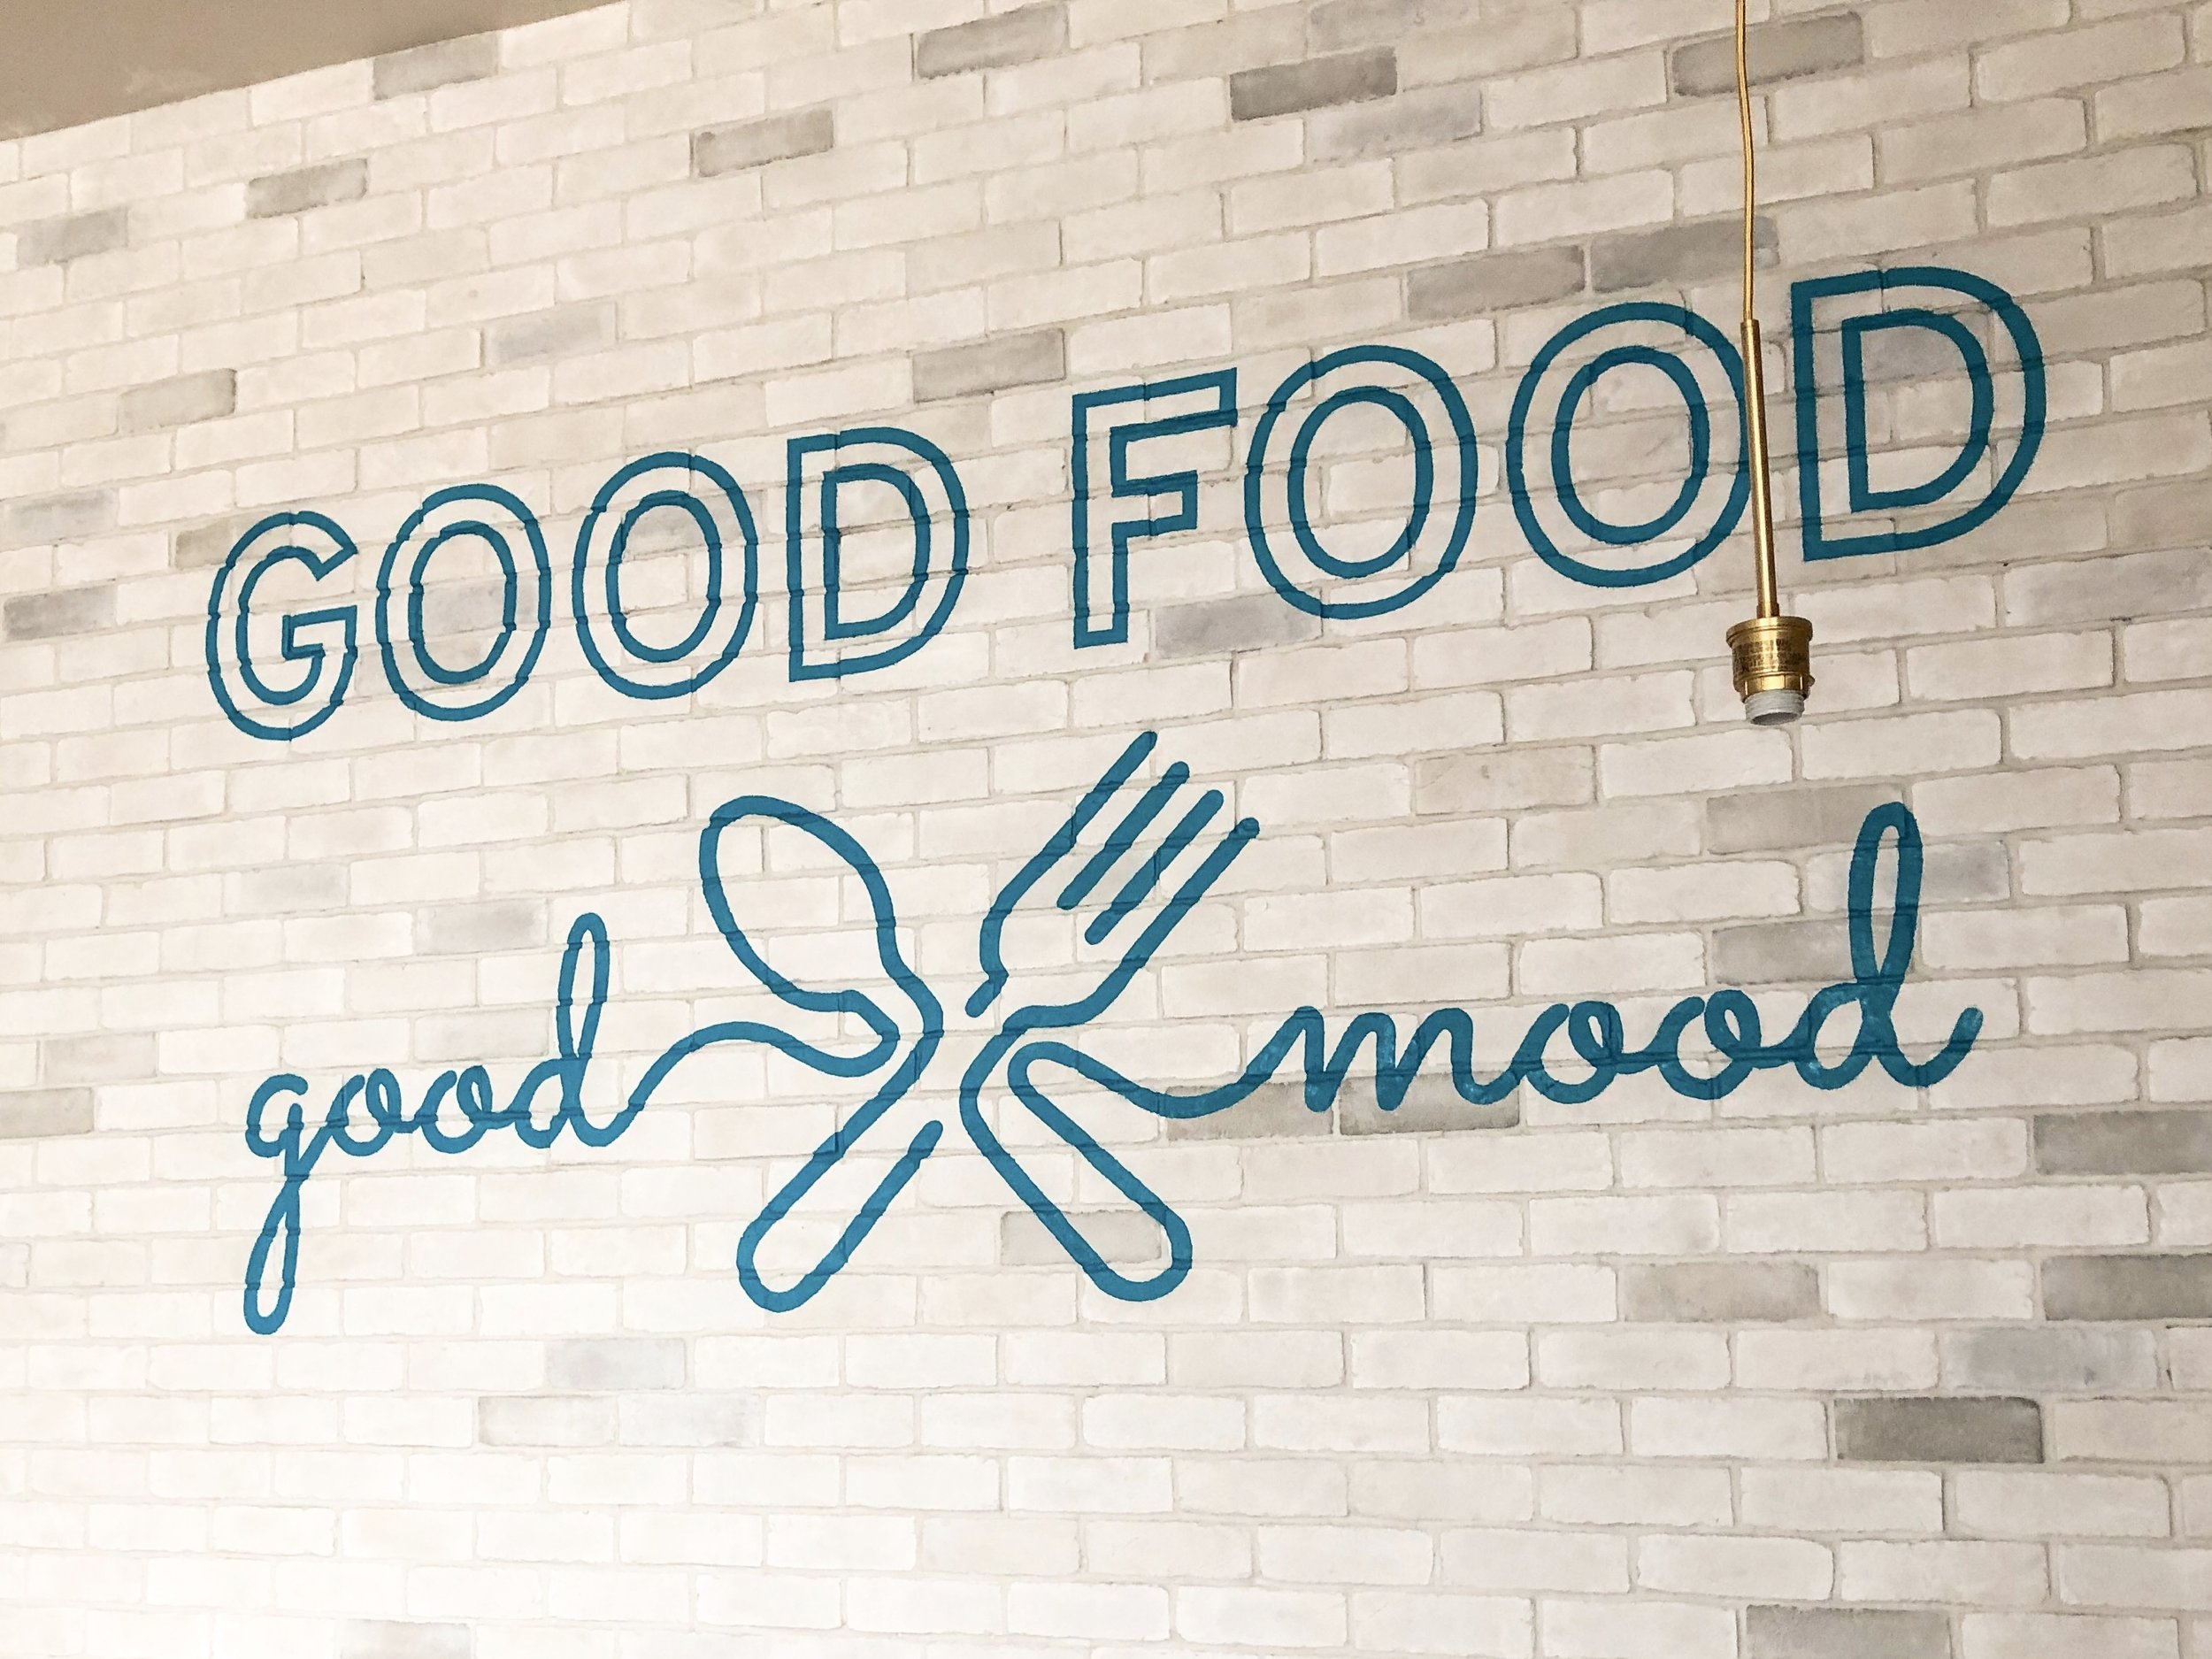 Luna Grill San Diego hand painted branding wall graphic mural